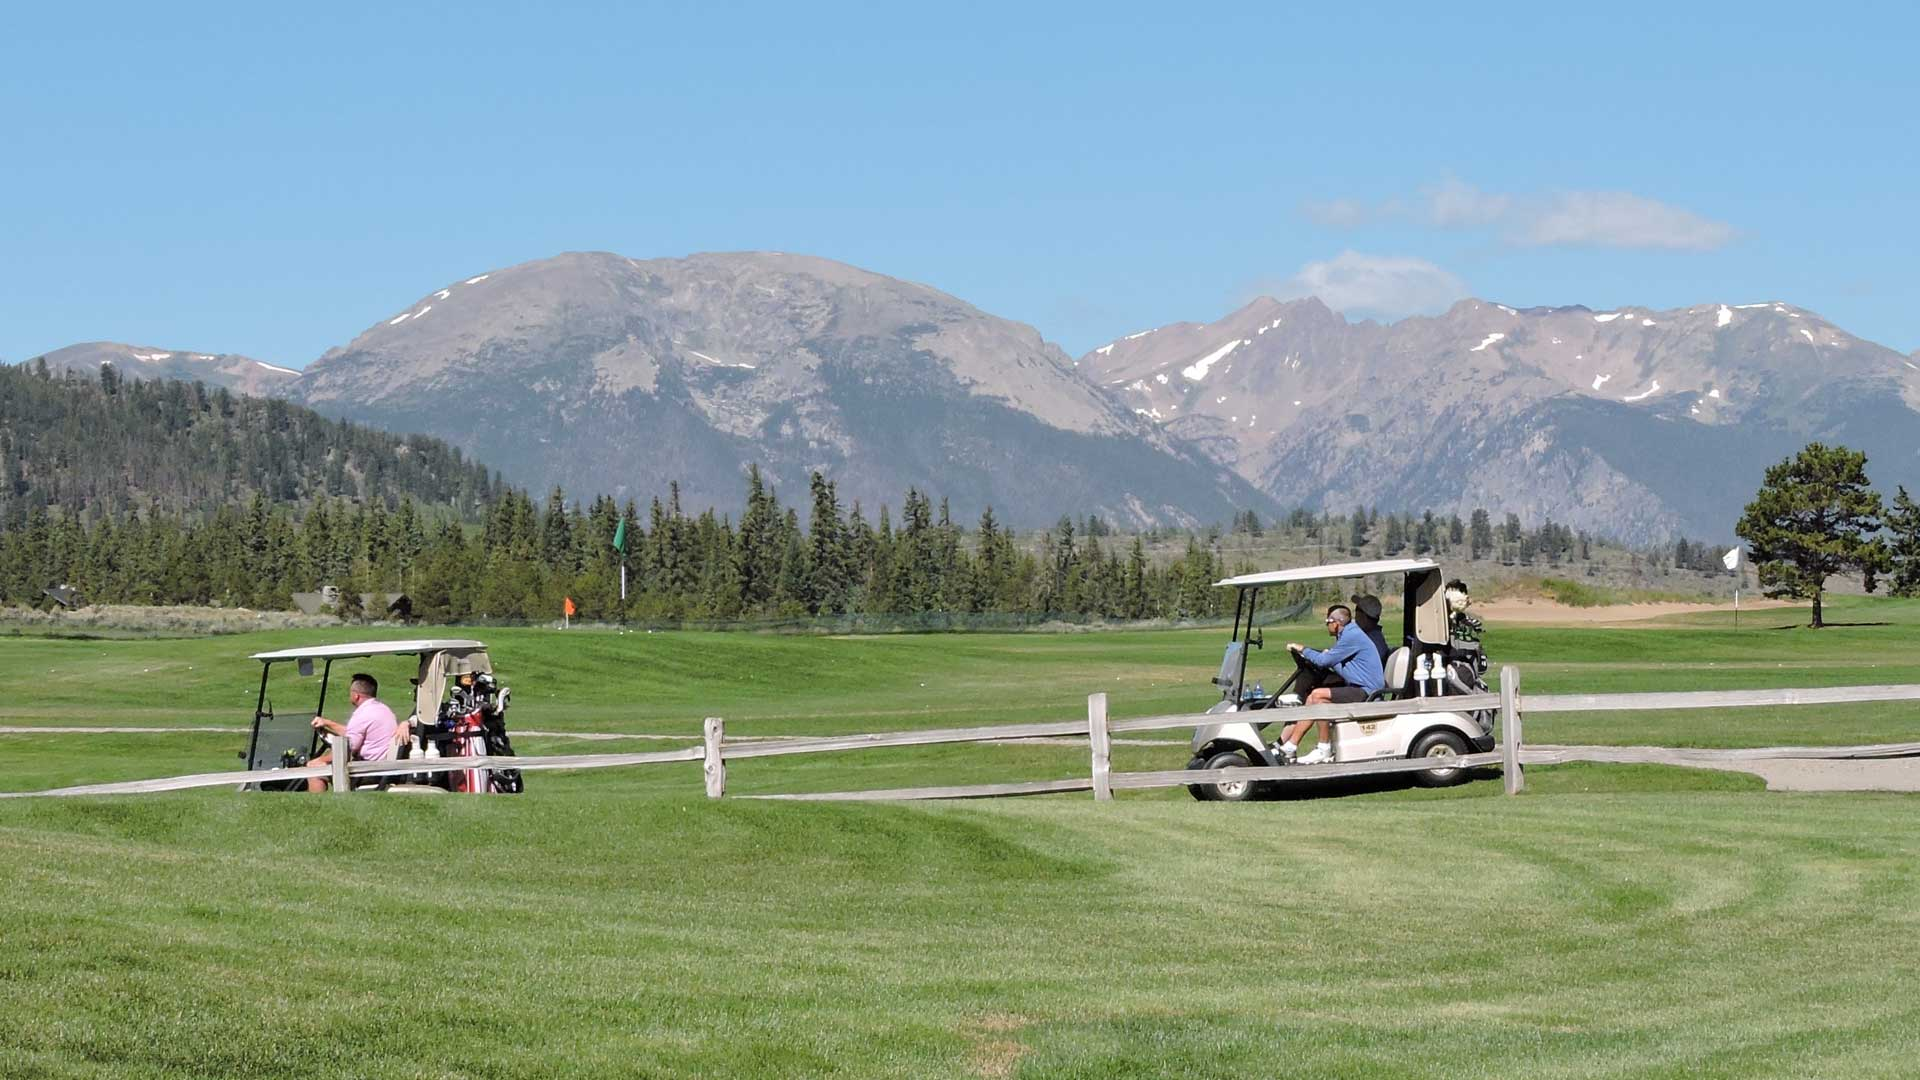 Tee It Up Golf Scramble at Keystone Ranch Golf Course